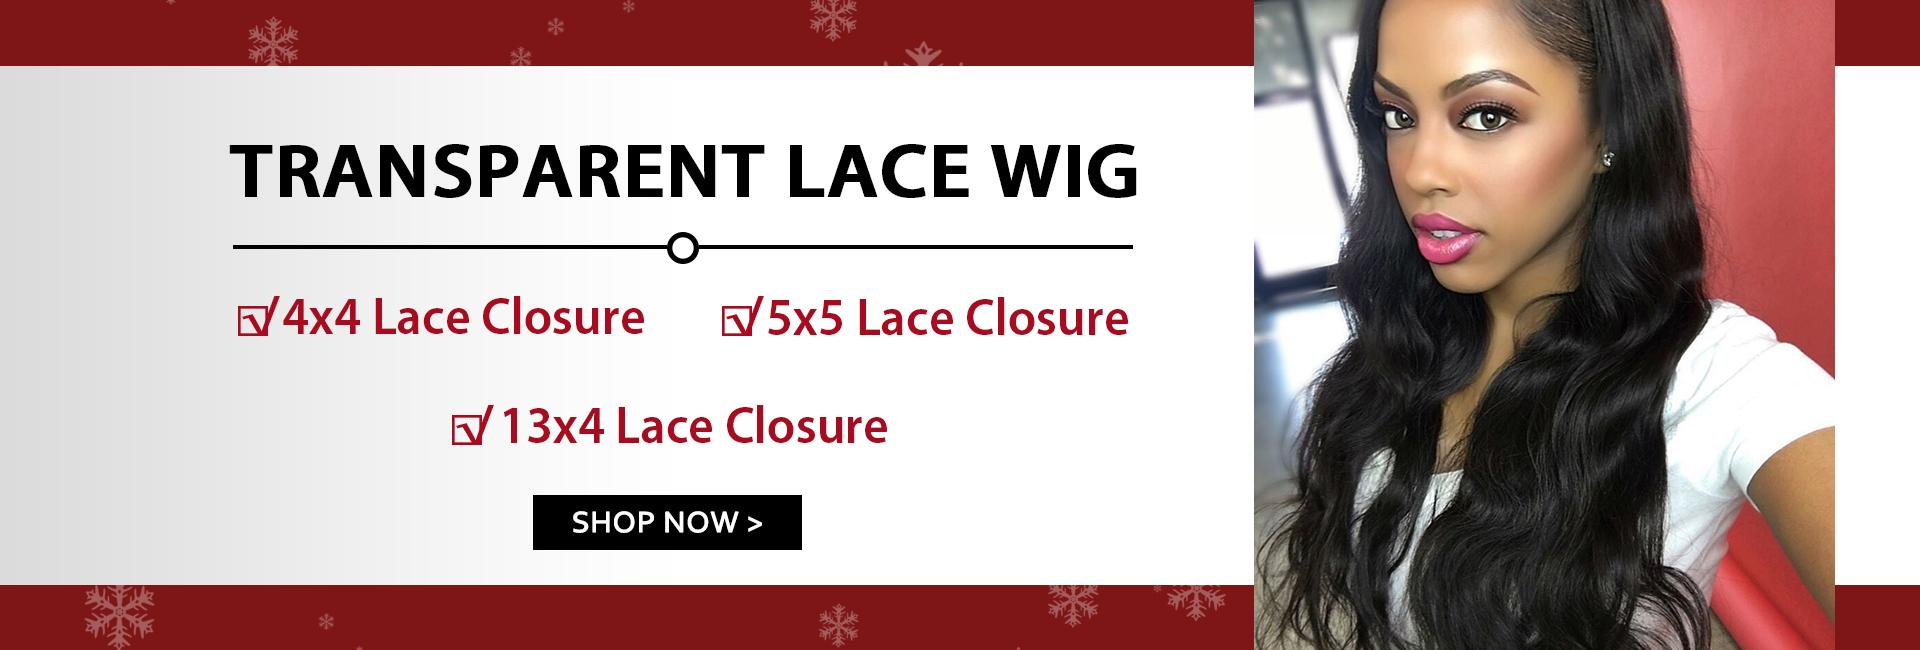 Lace Closure Wig Up to 46% Off